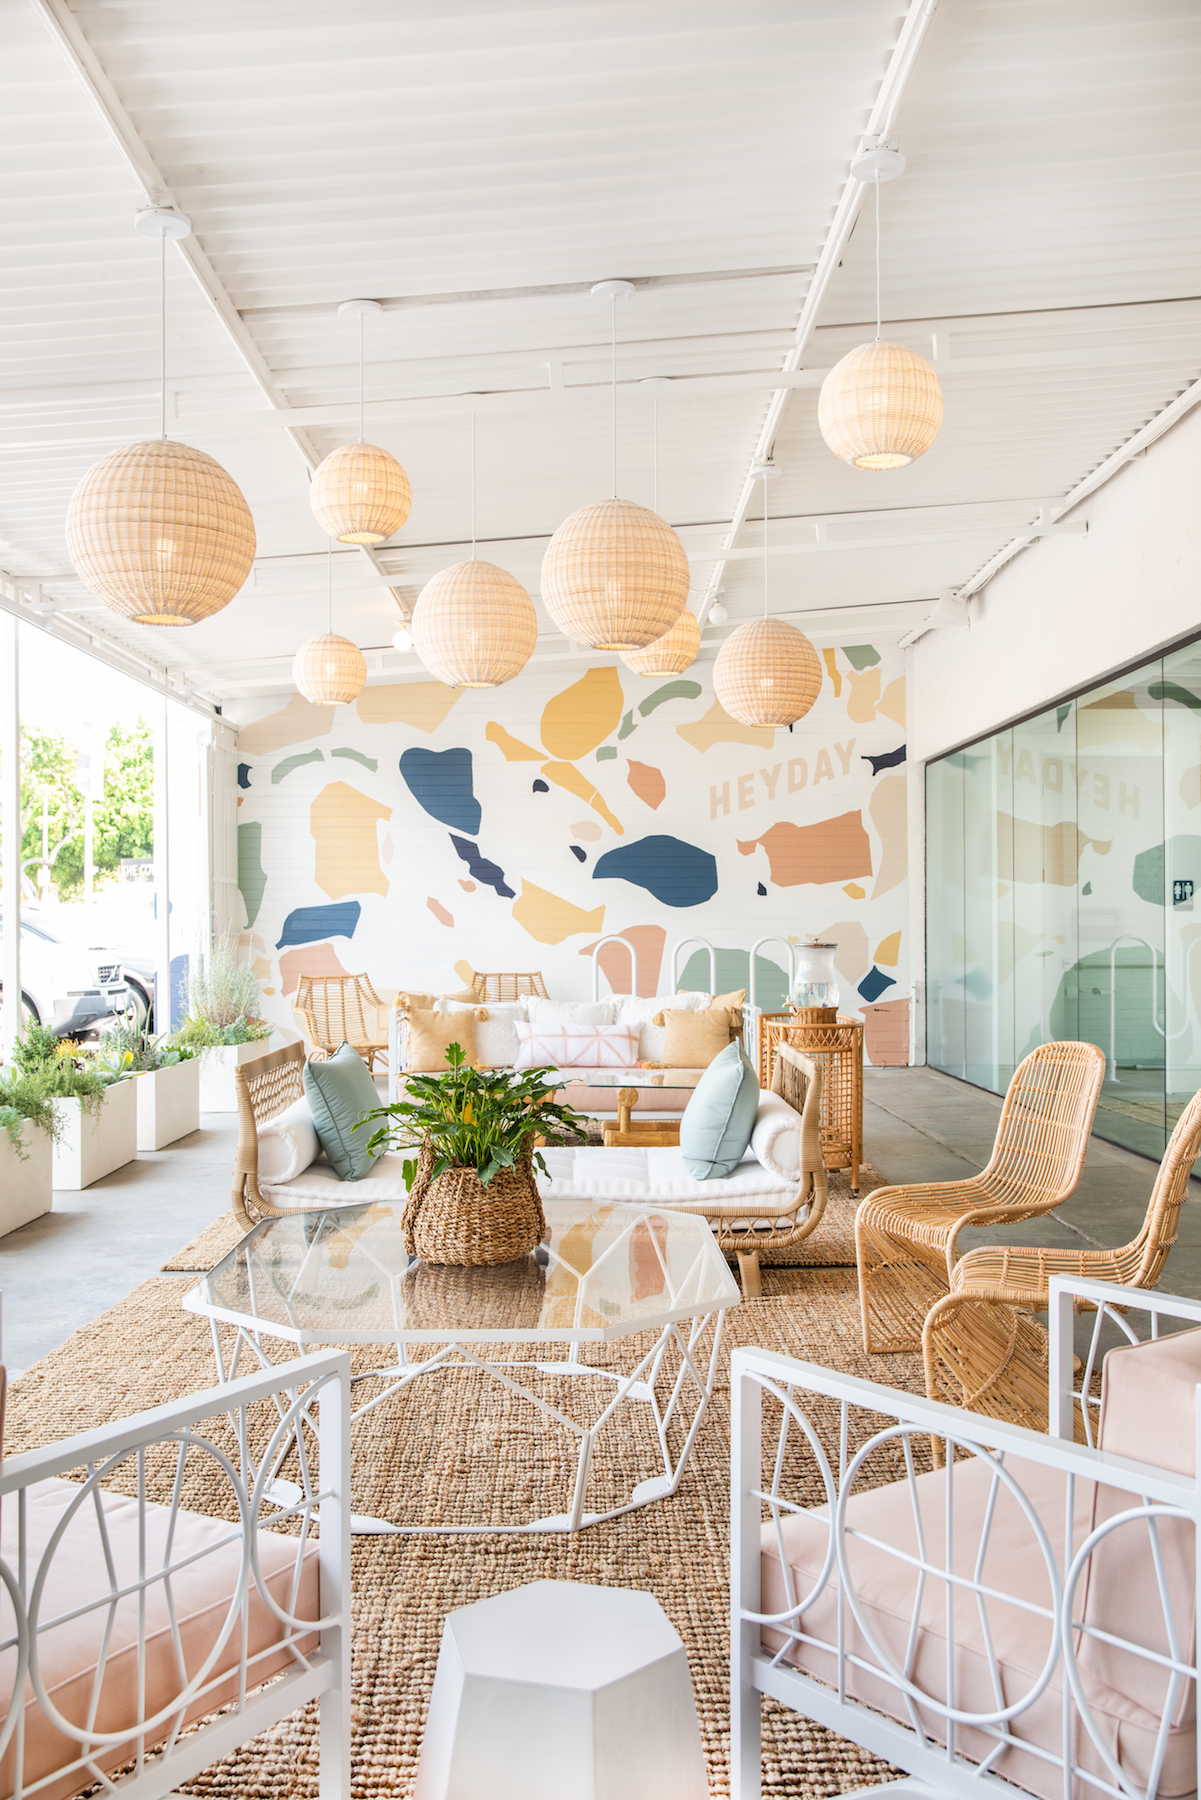 Heyday, a Calm & California-Cool Spot for s in Los Angeles ... on california closet design ideas, california home design plans, california interior design ideas, california garden design ideas,